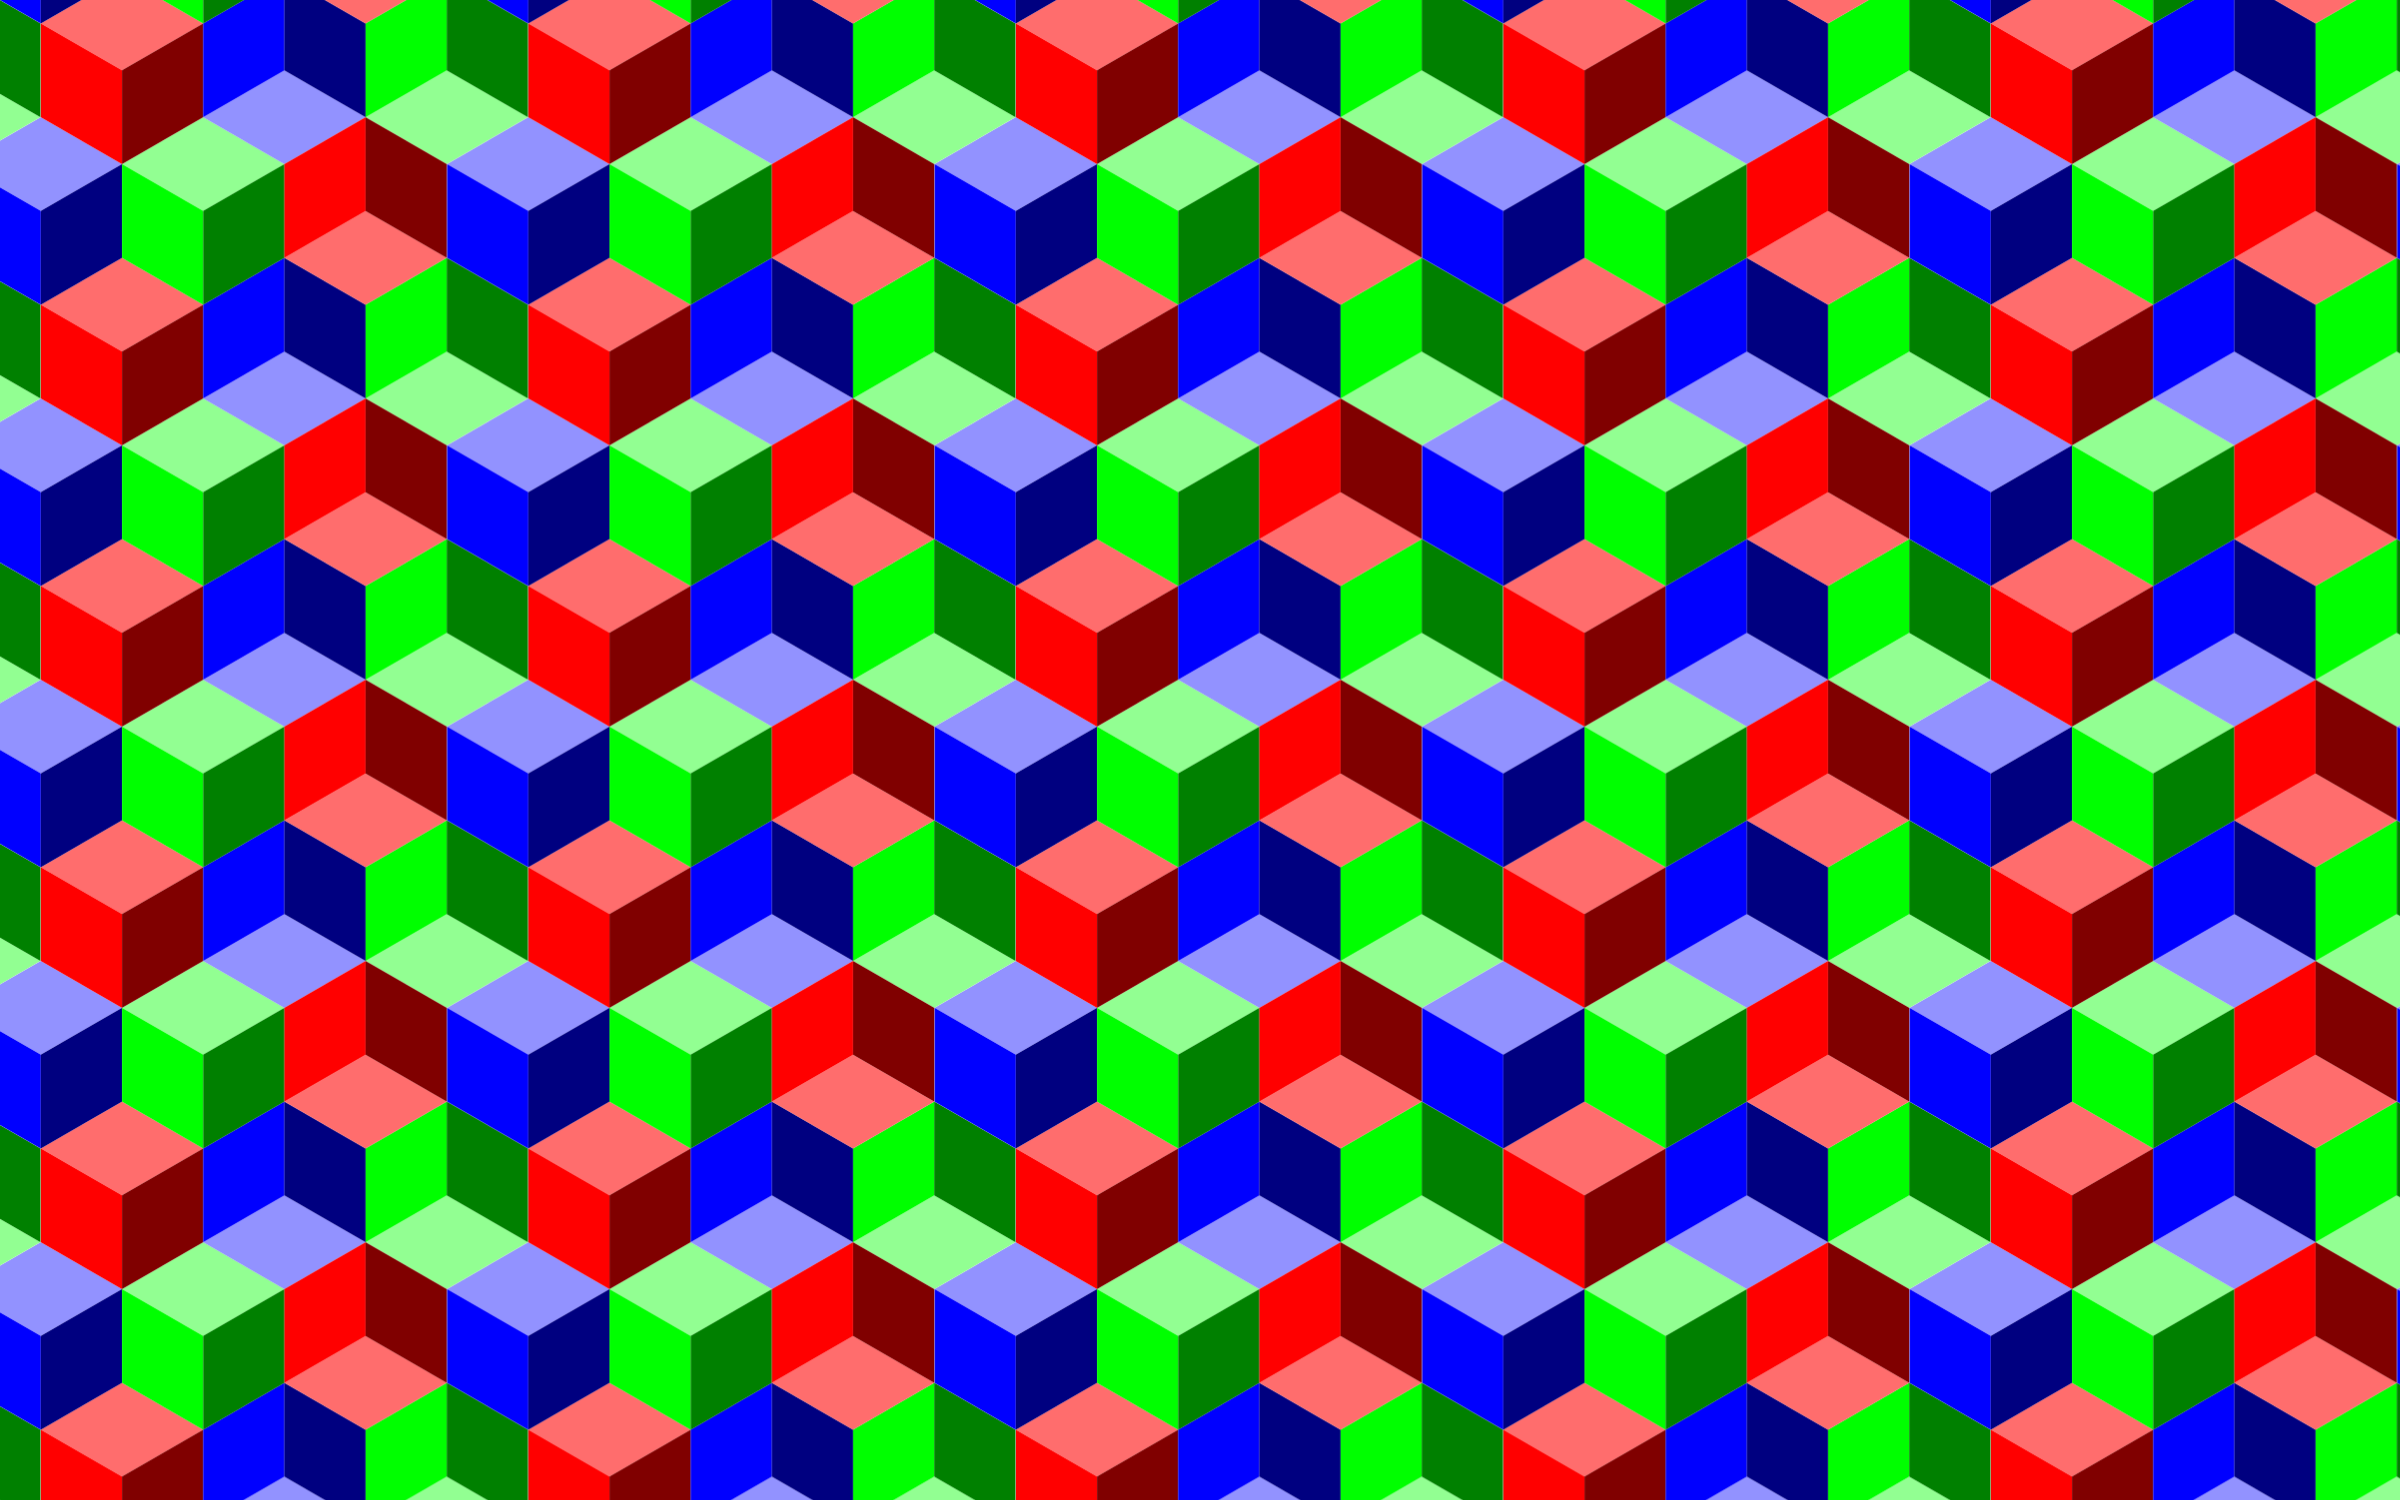 Seamless RGB Isometric Cubes Pattern 2 by GDJ